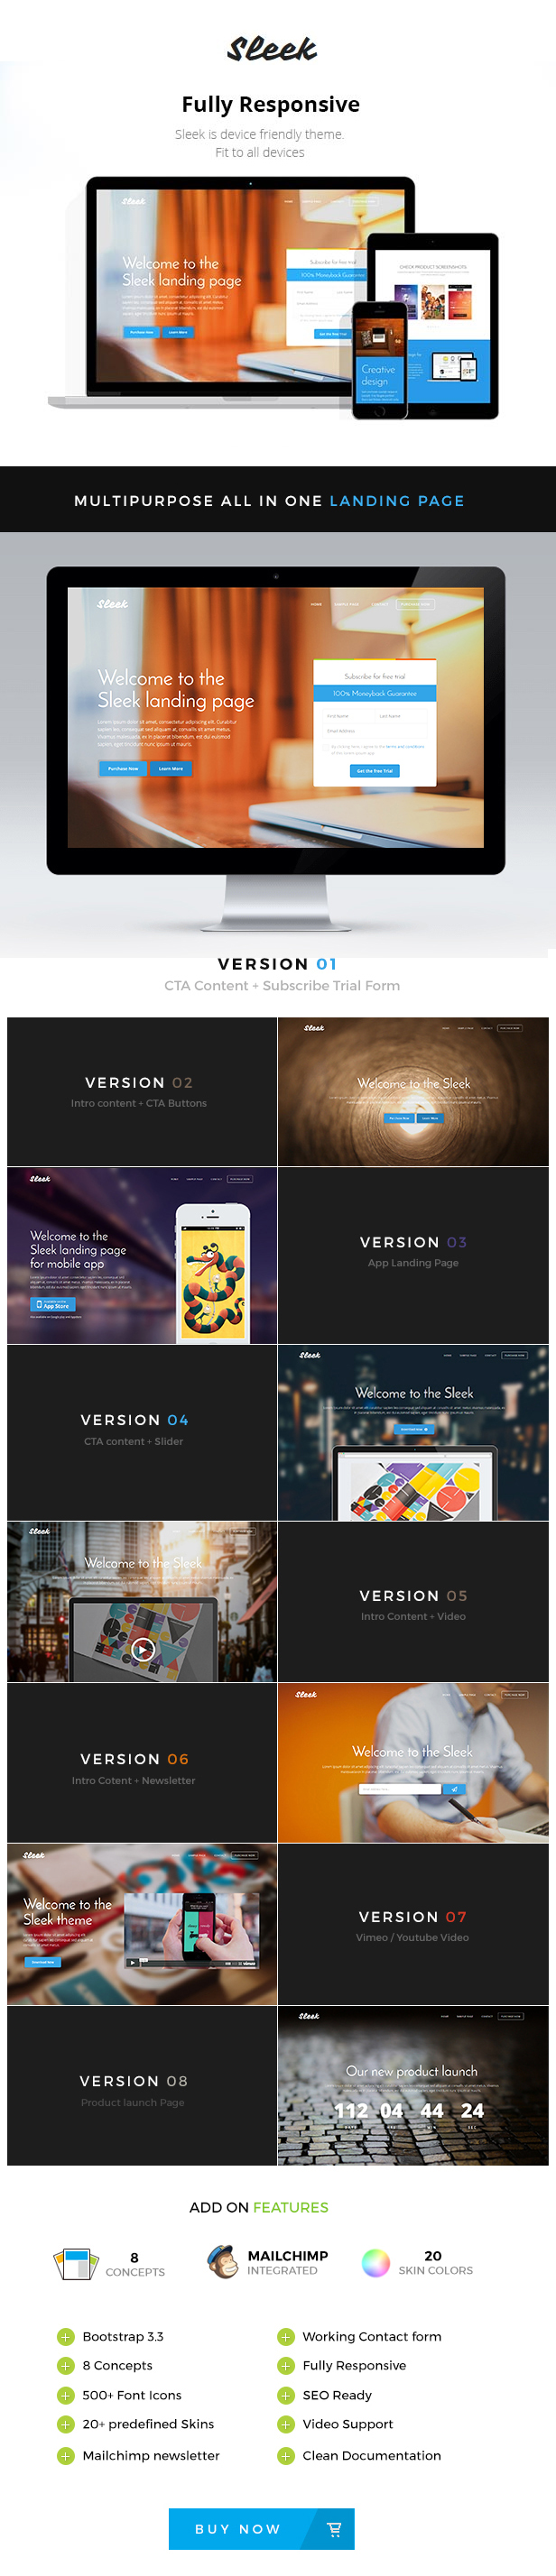 Free download Sleek with Mobirise Responsive Bootstrap Landing Page Builder